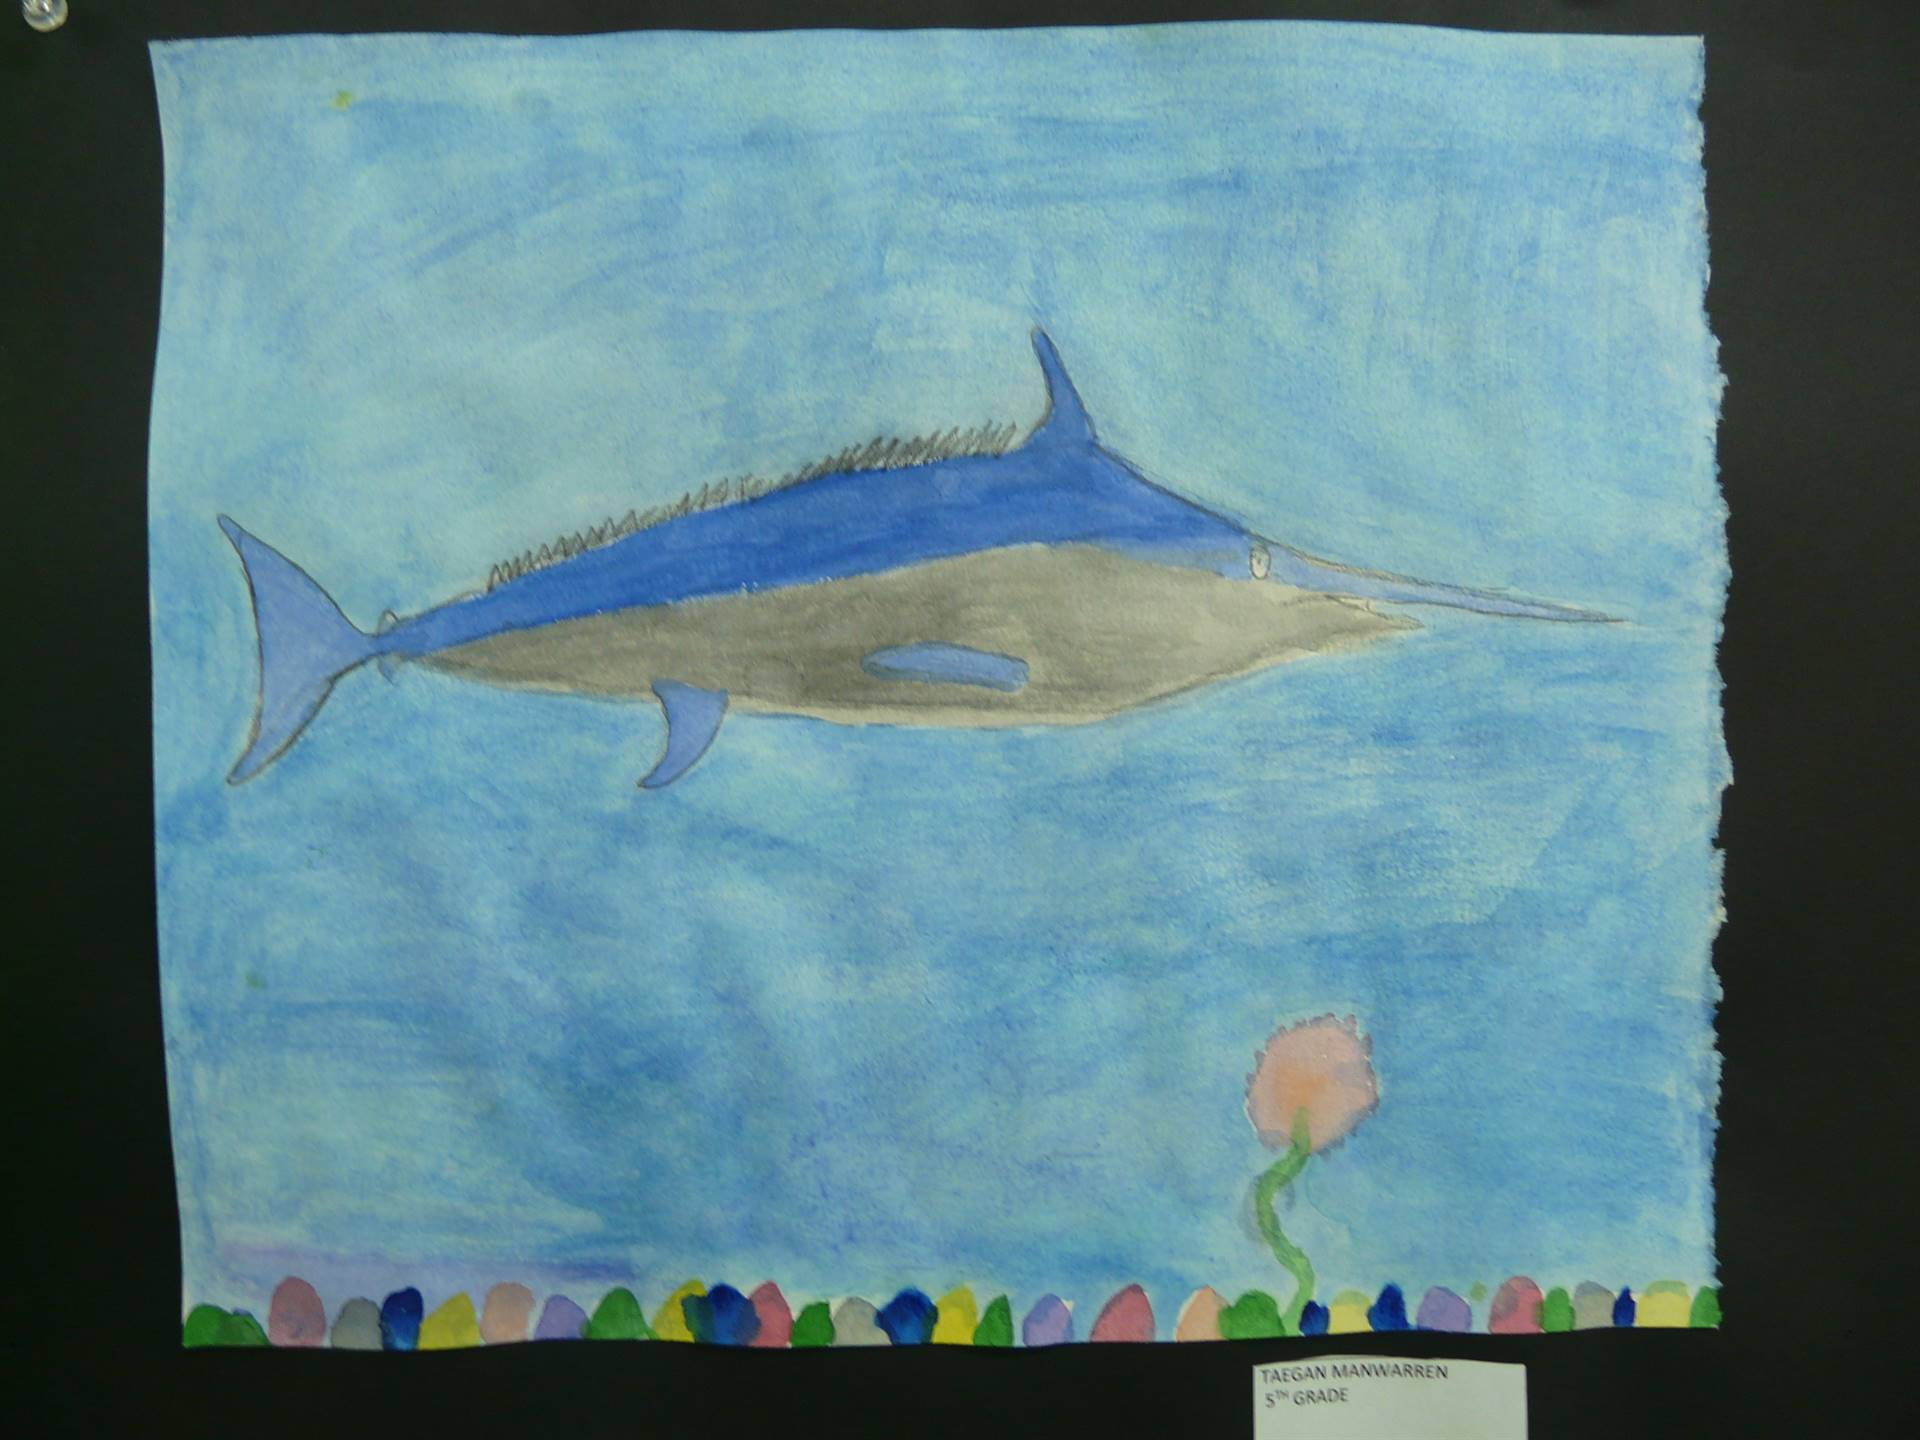 picture of a swordfish